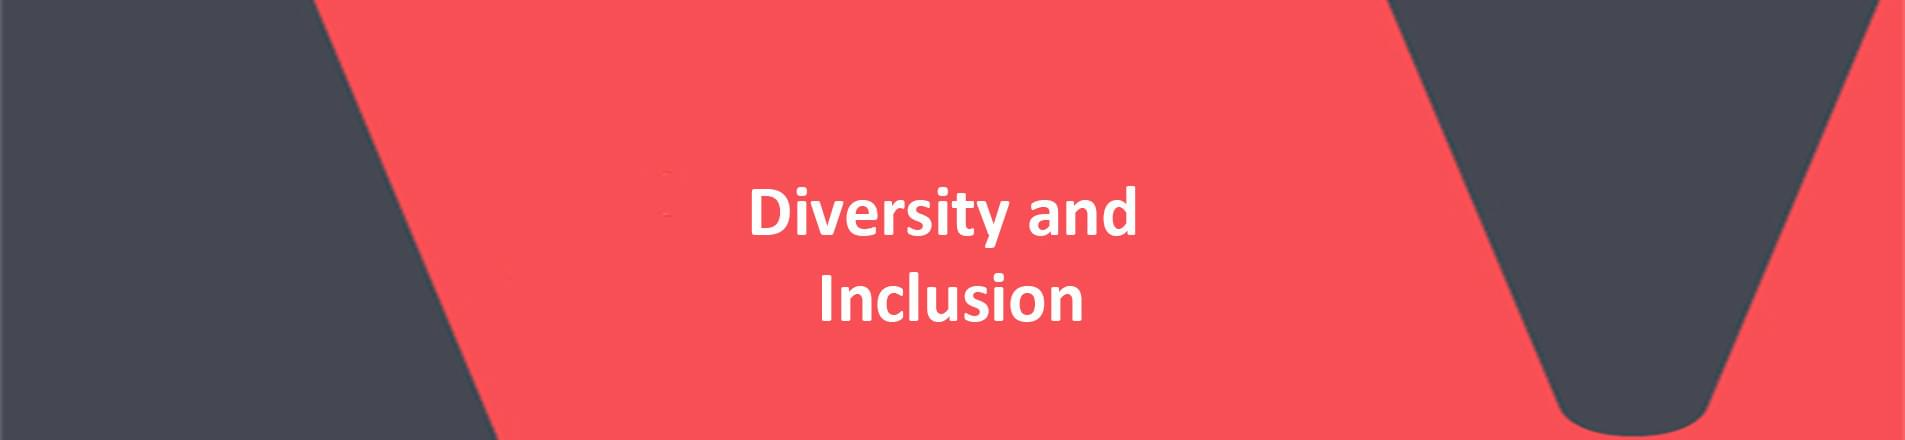 The words Diversity and Inclusion in white on a red VERCIDA branded background